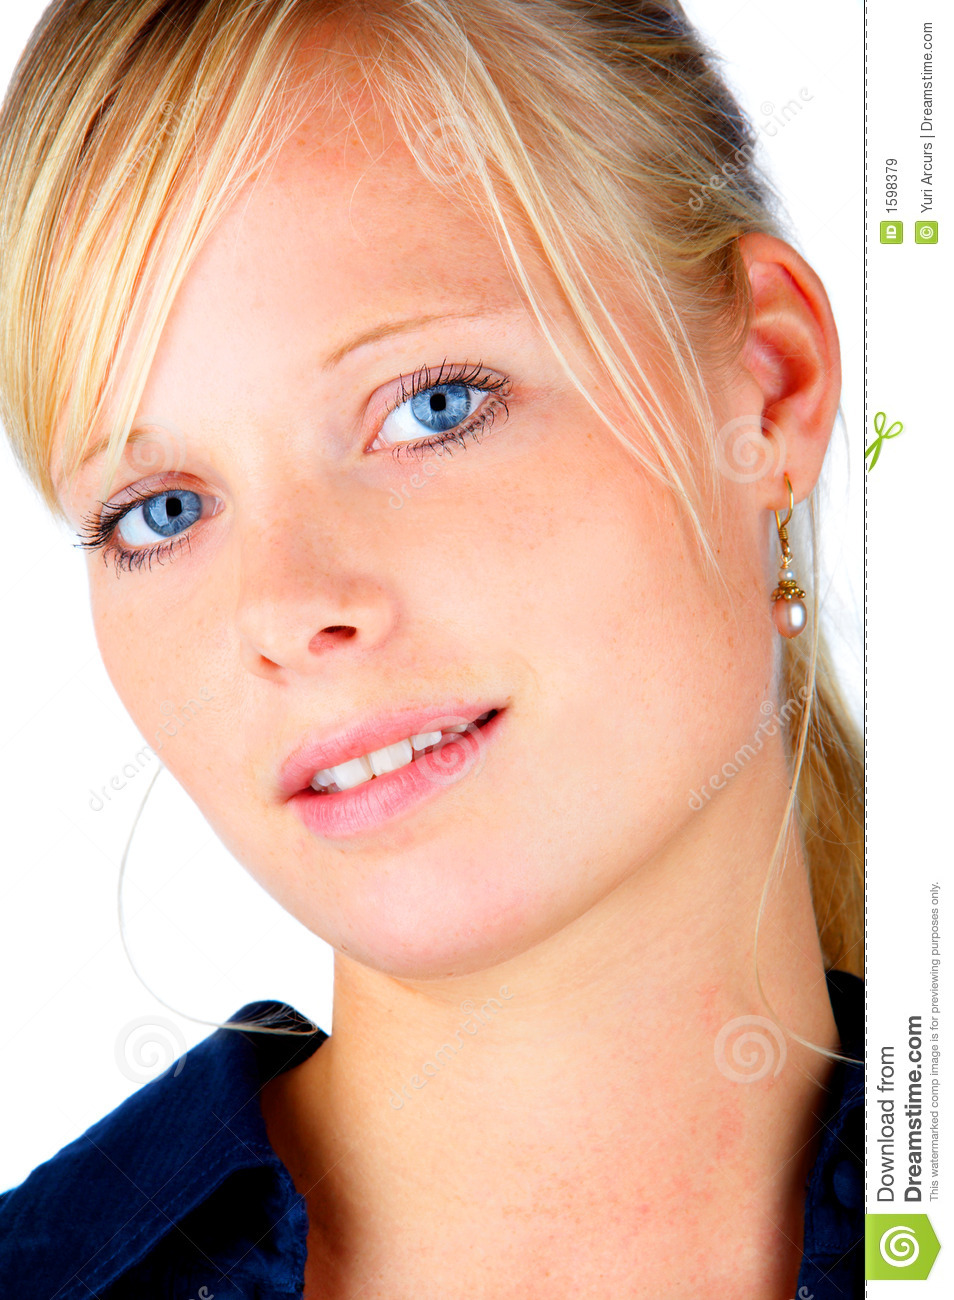 blonde hair and blue eyes stock image image of girl